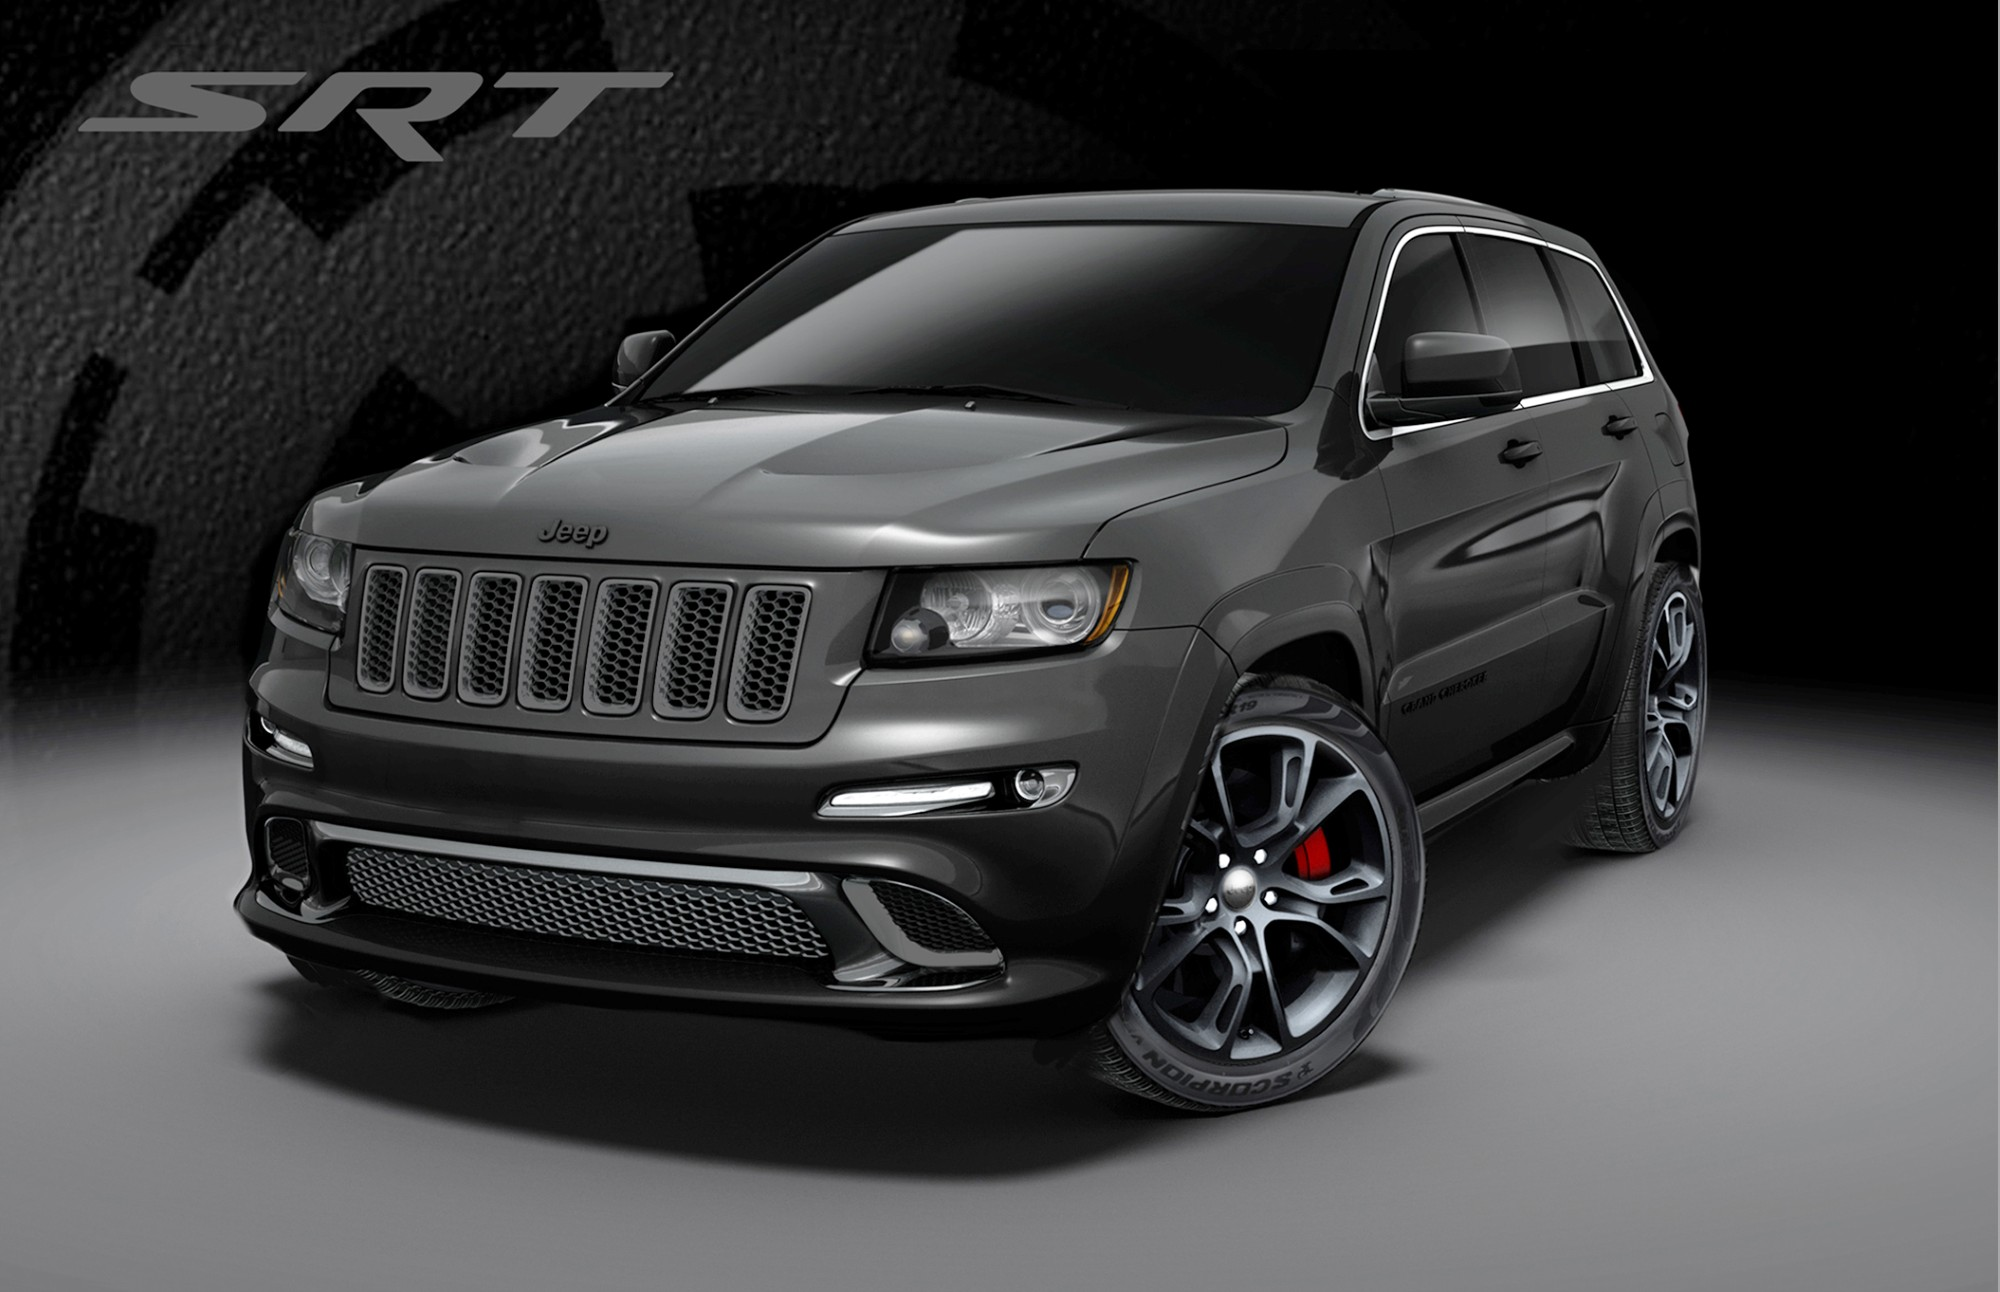 2013 jeep srt8 horsepower